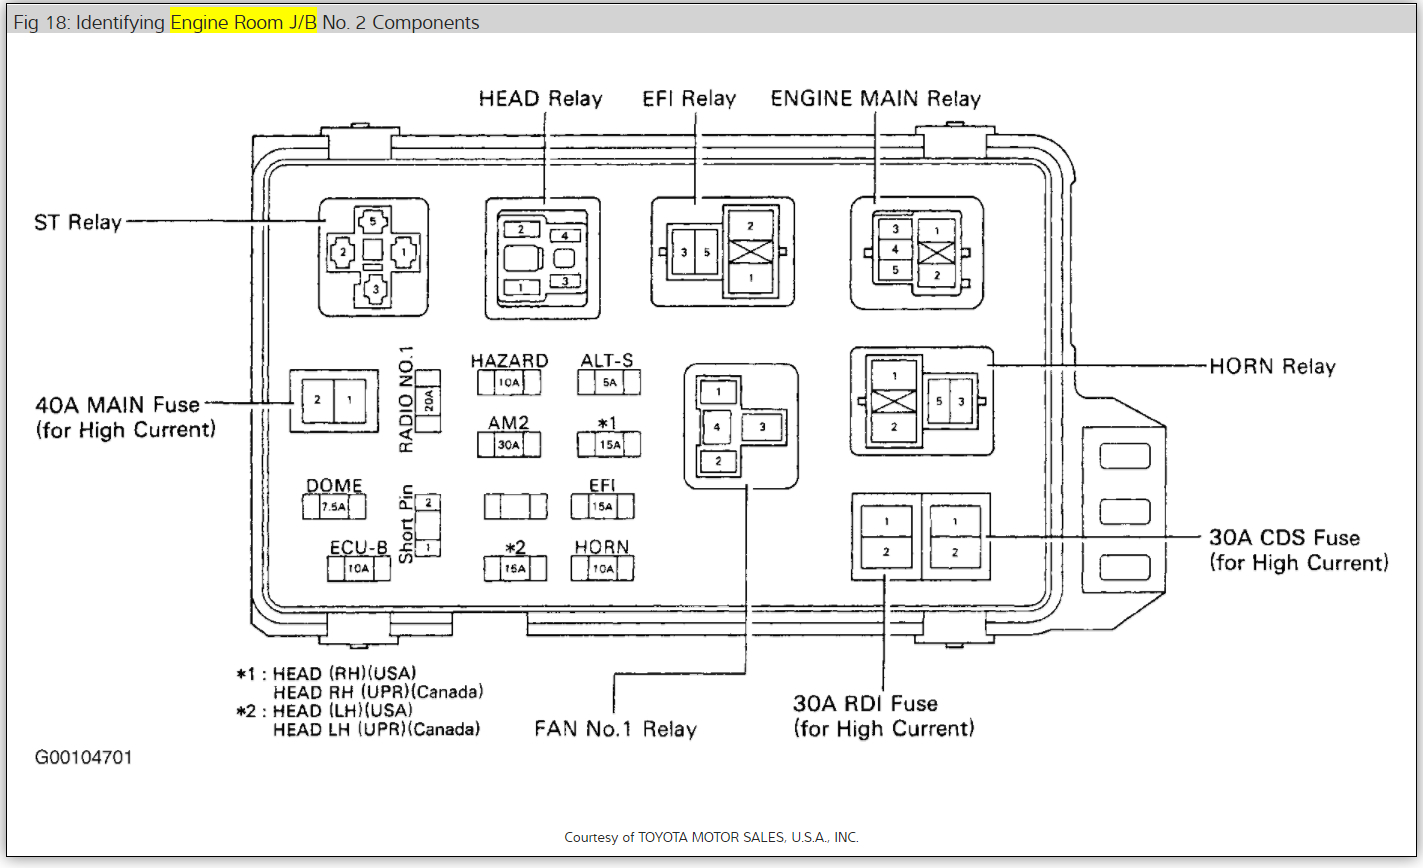 1998 Camry Fuse Box Trusted Schematics Diagram 2008 Matrix Wiring Will Be A Thing U2022 Description